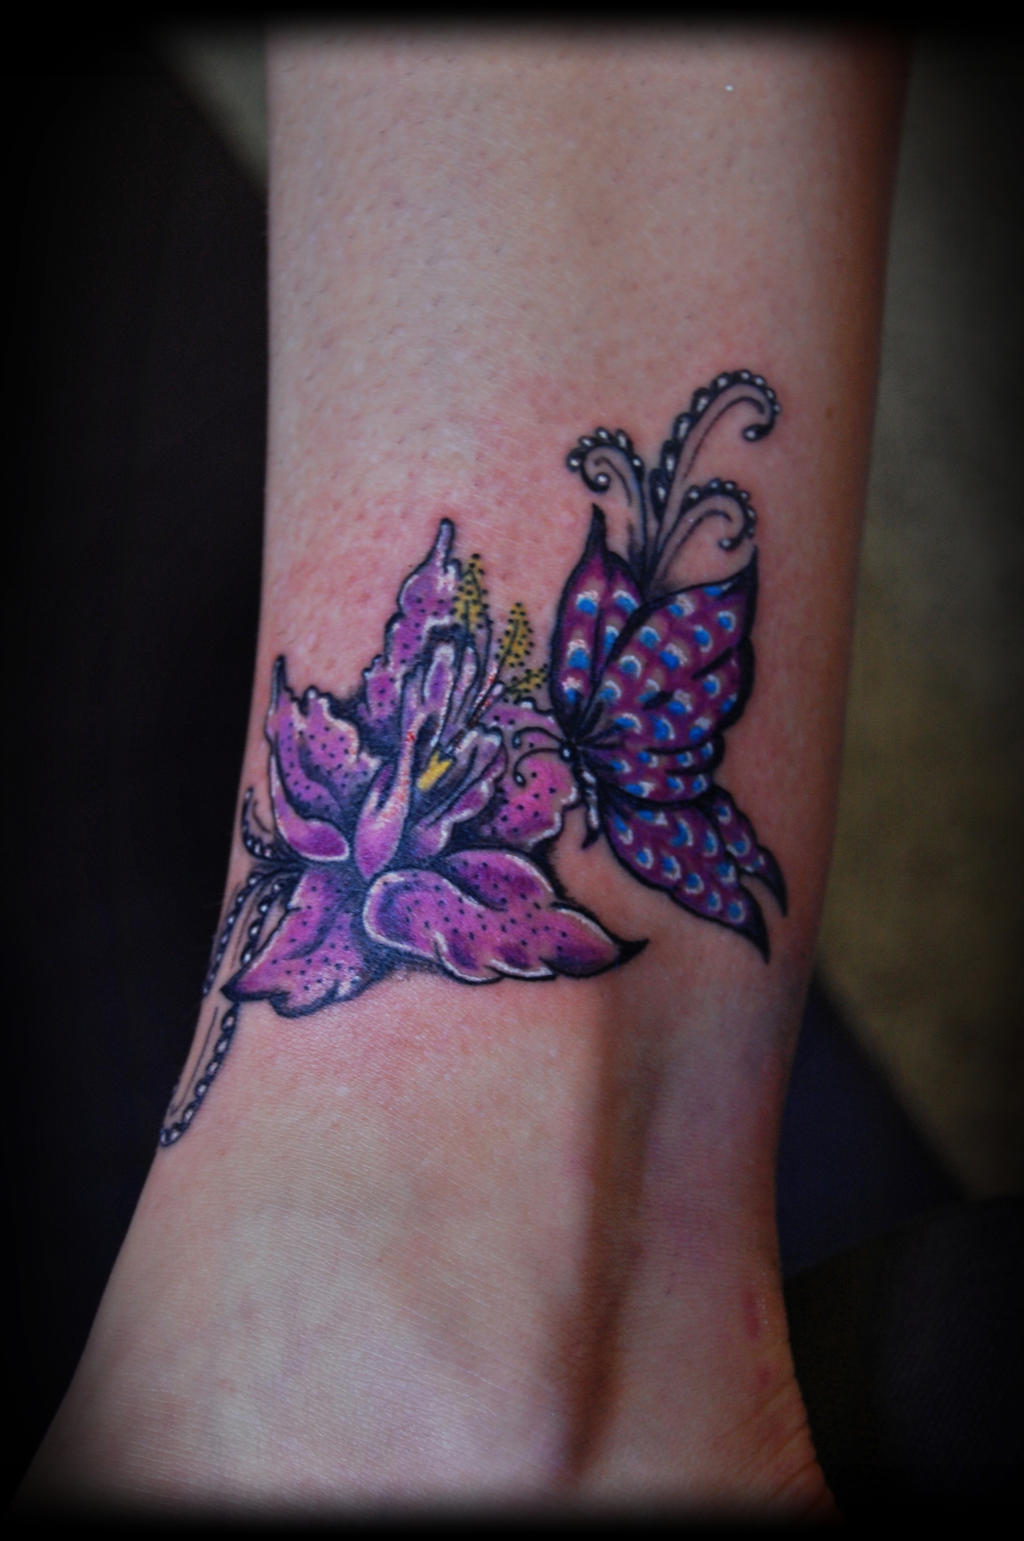 Butterfly flower tattoo by lilithhate on deviantart for Flower and butterfly tattoo